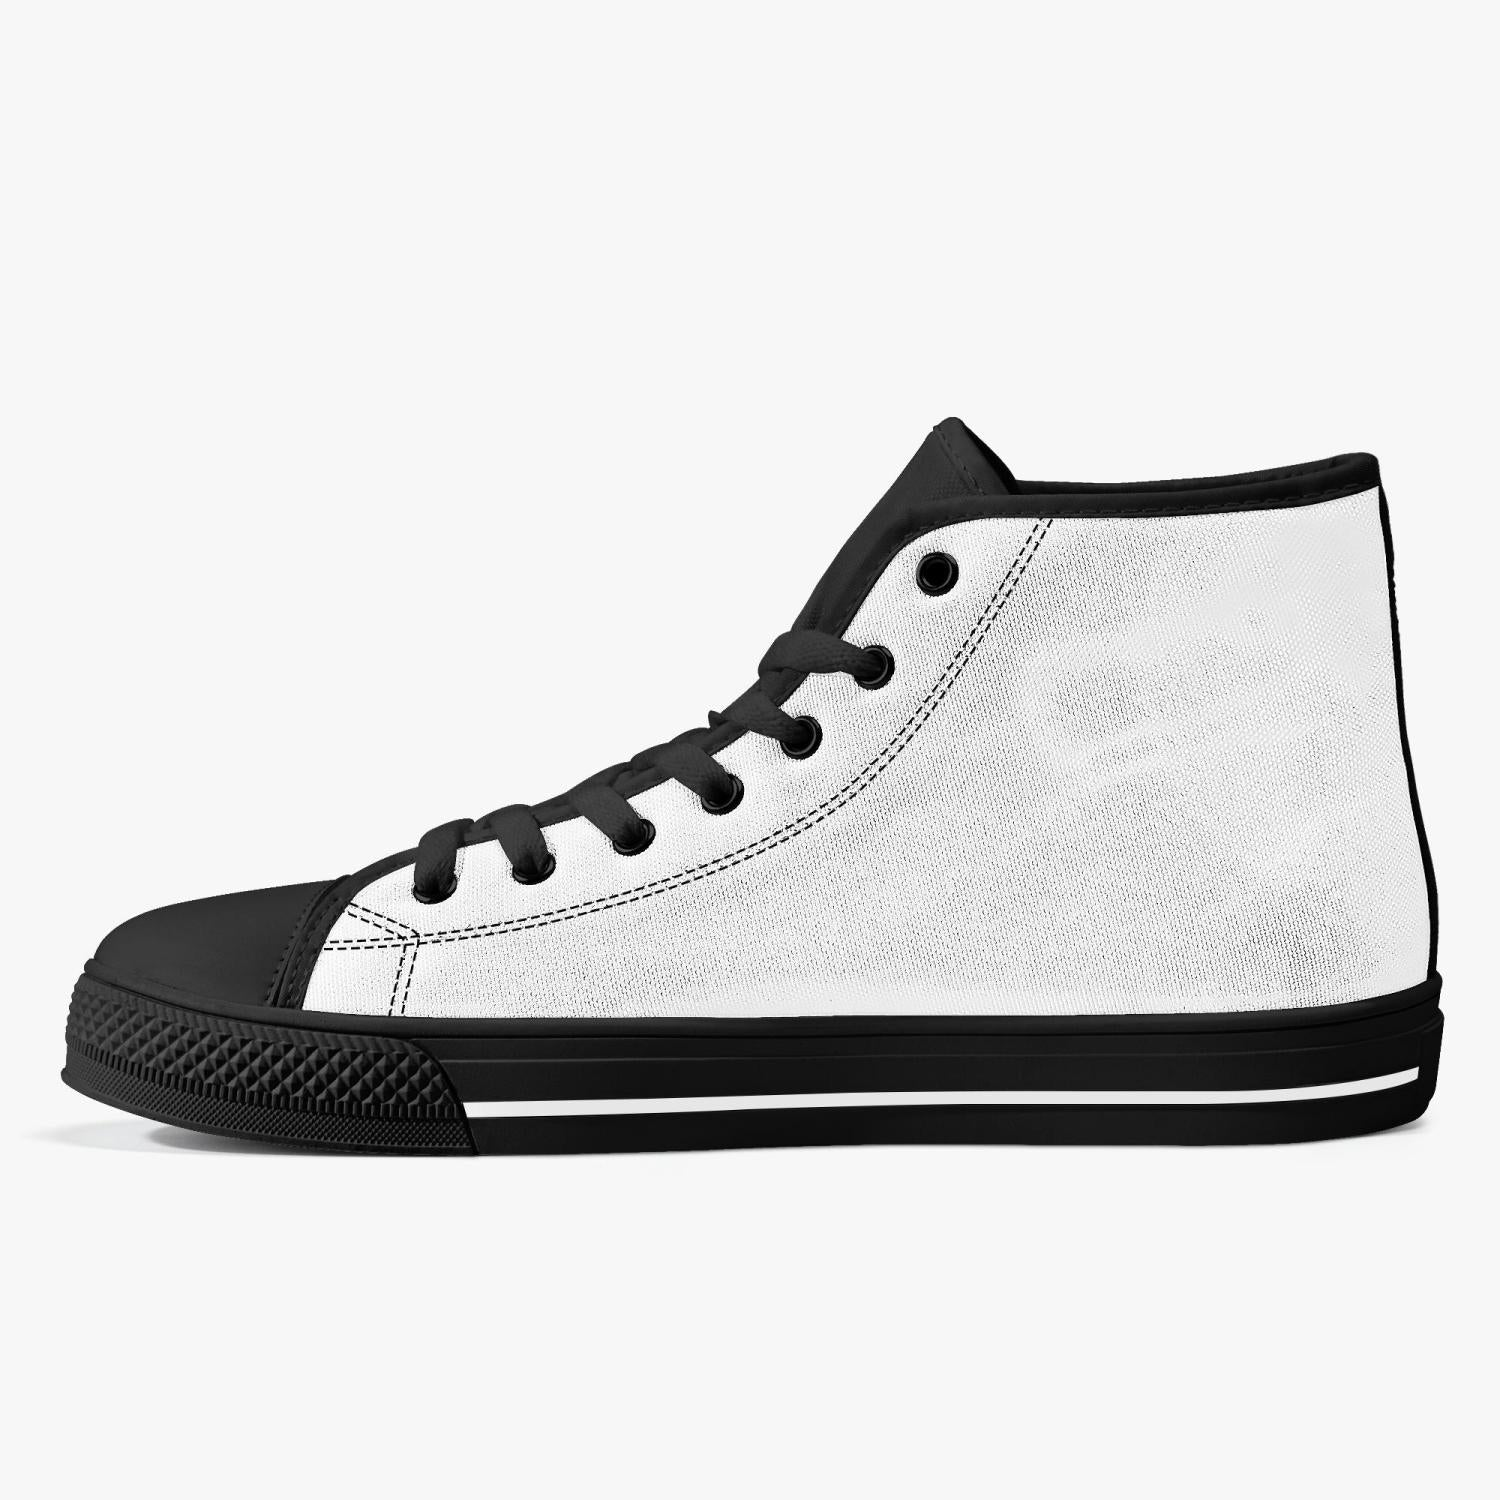 Kick COFFEE RELIGION Classic High-Top Sneakers Canvas Shoes - White/Black